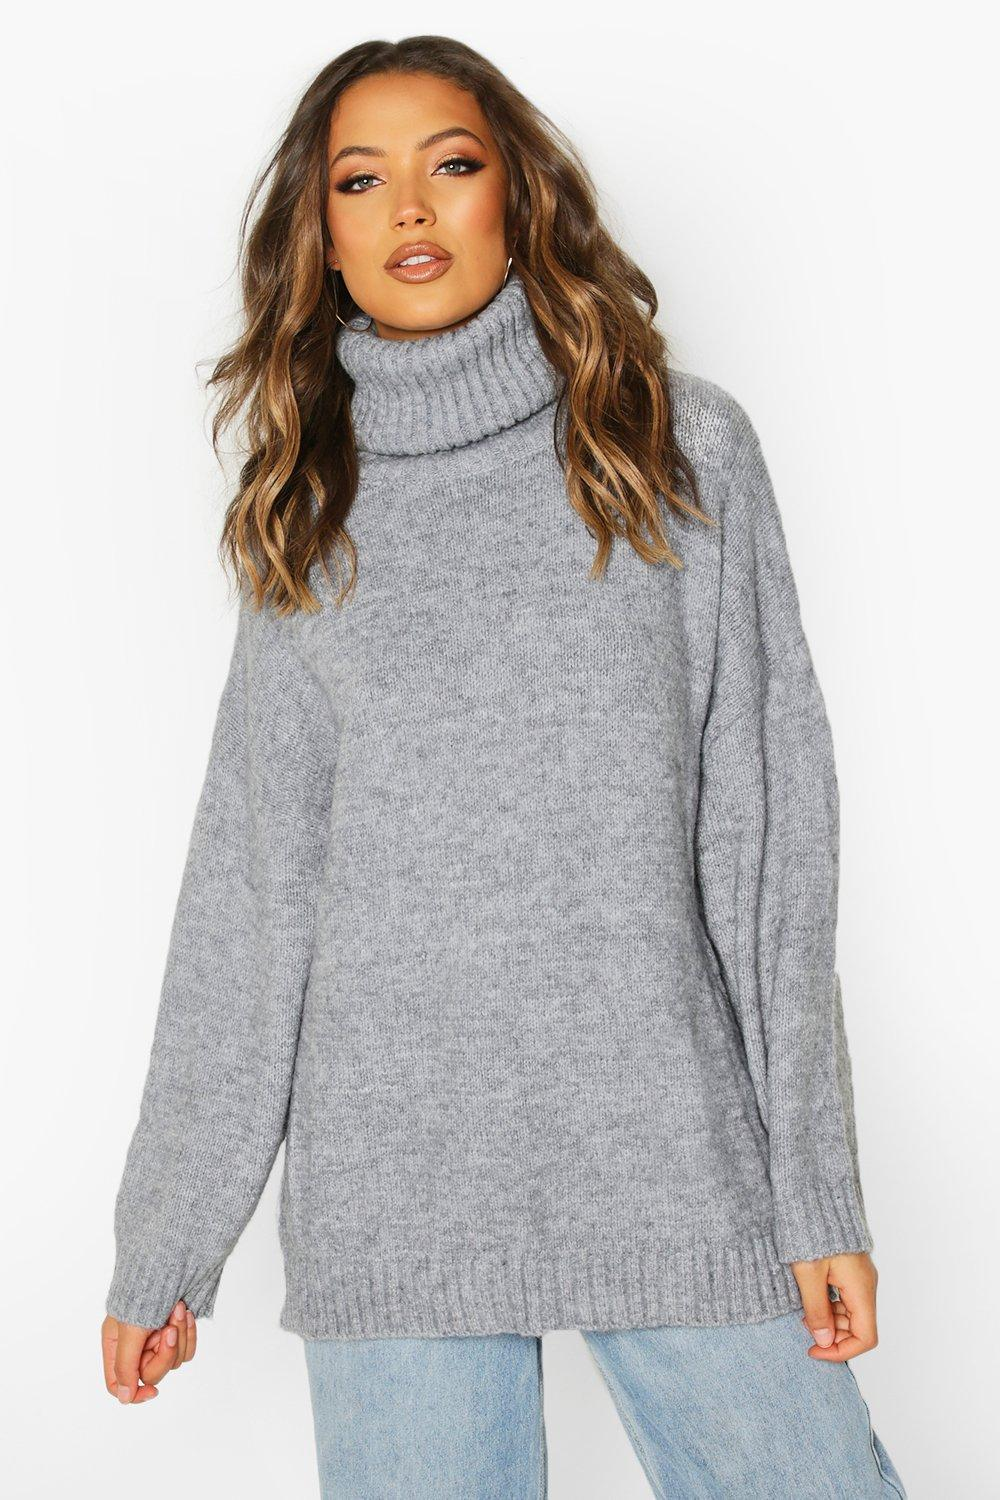 Womens Tall Oversized Roll Neck Premium Jumper - Grey - One Size, Grey - Boohoo.com